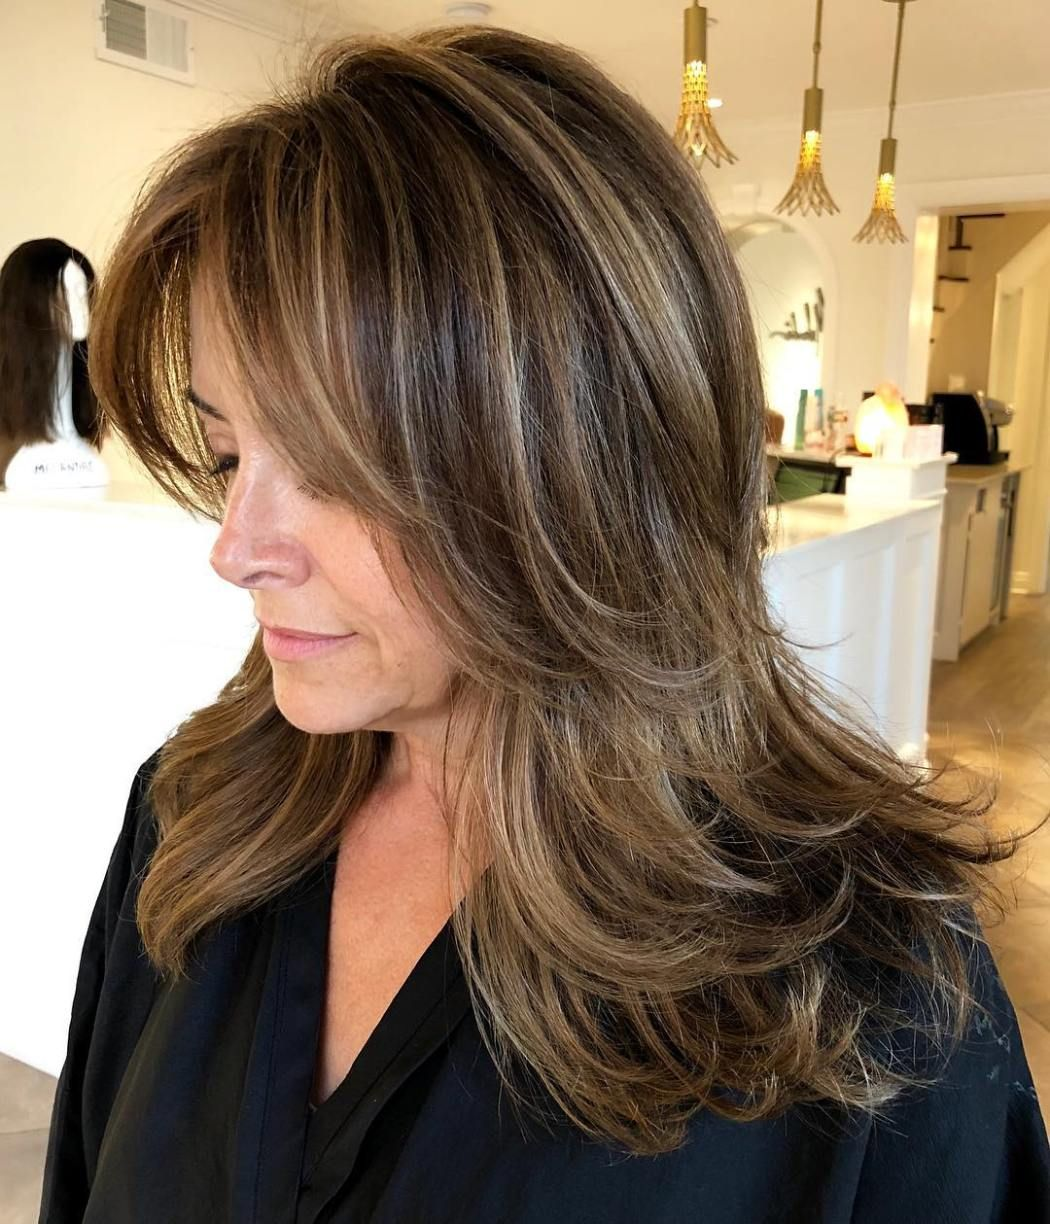 Long Feathered Hairstyle For Women Over 40 Youthful Hair Over 40 Hairstyles Hair Styles